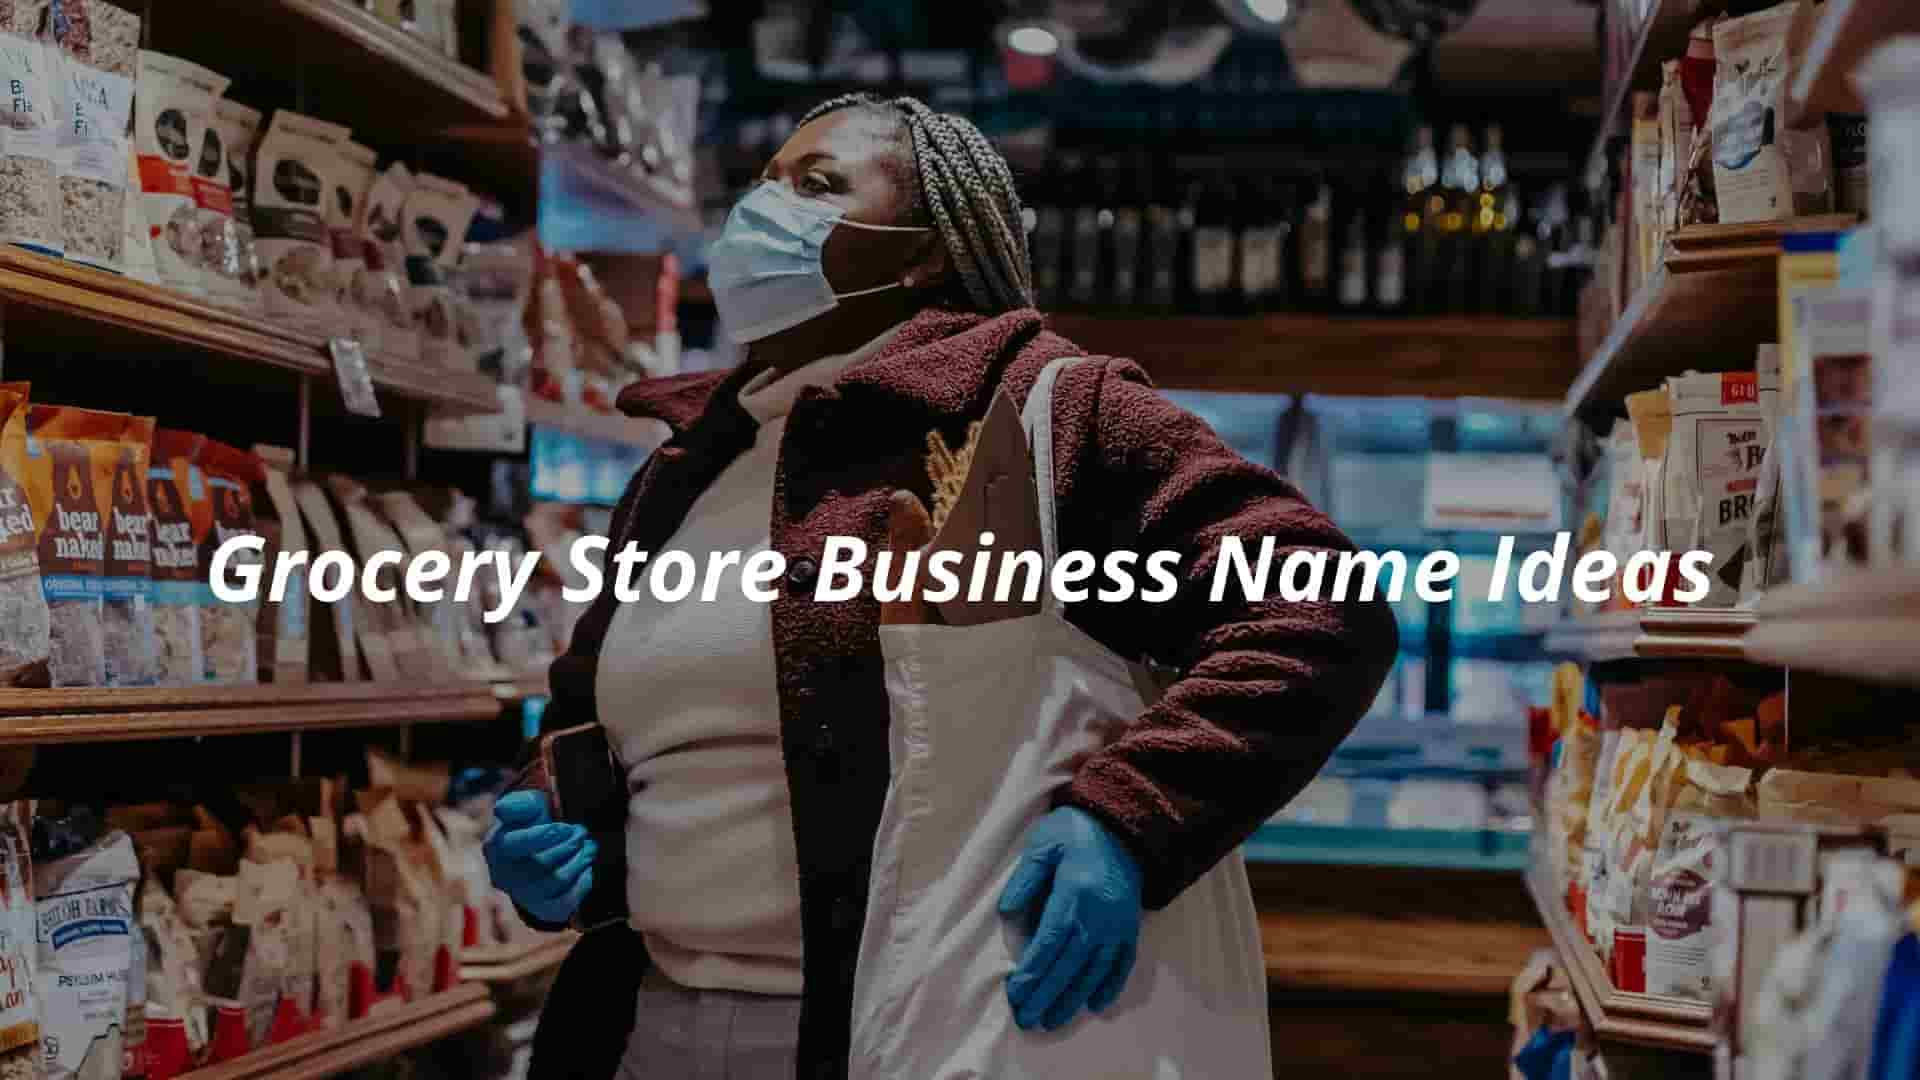 Grocery Store Business Name Ideas